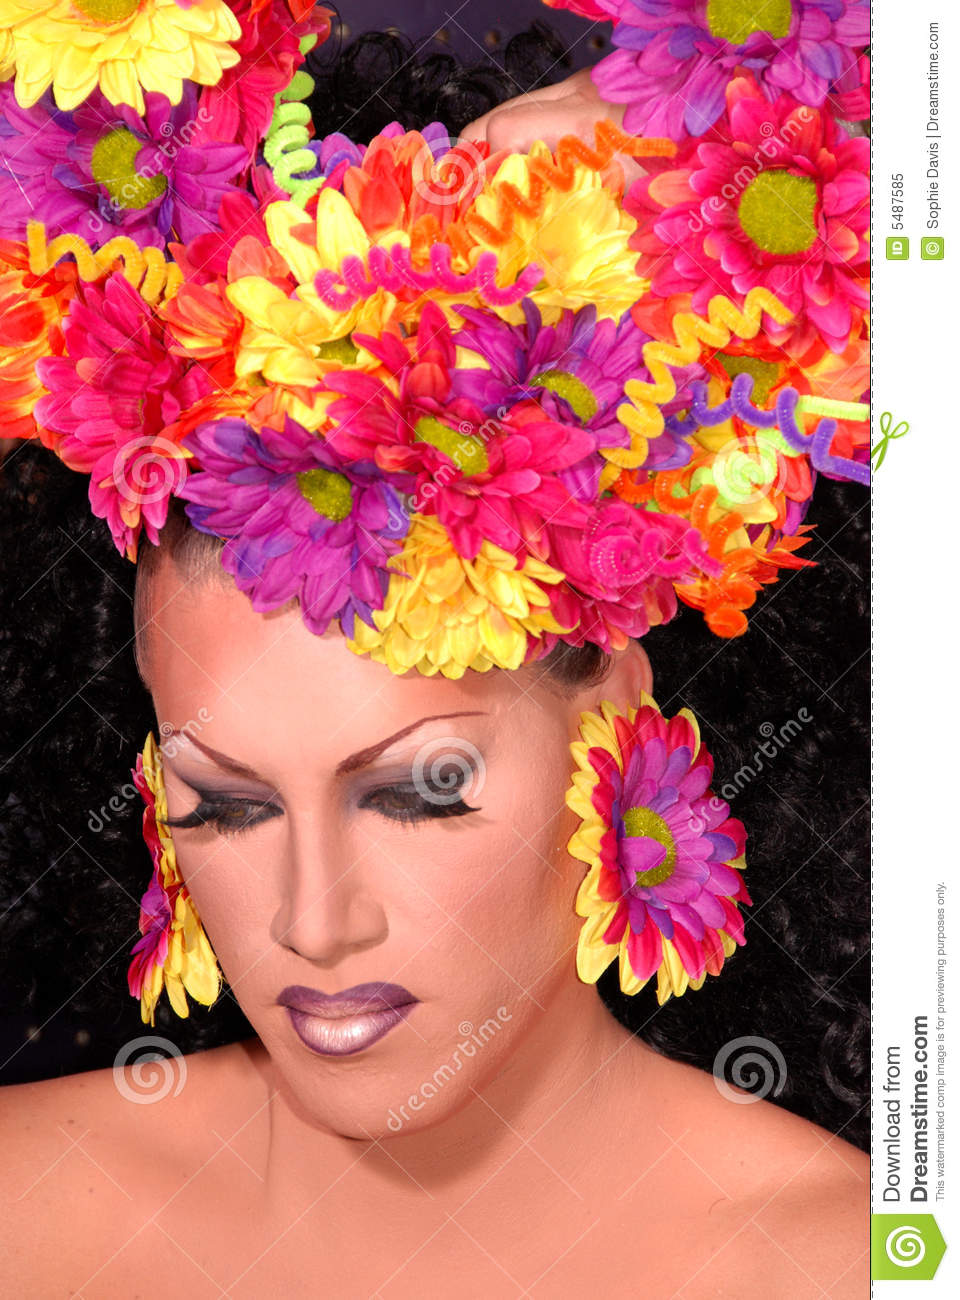 flower drag queen royalty free stock photo image 5487585